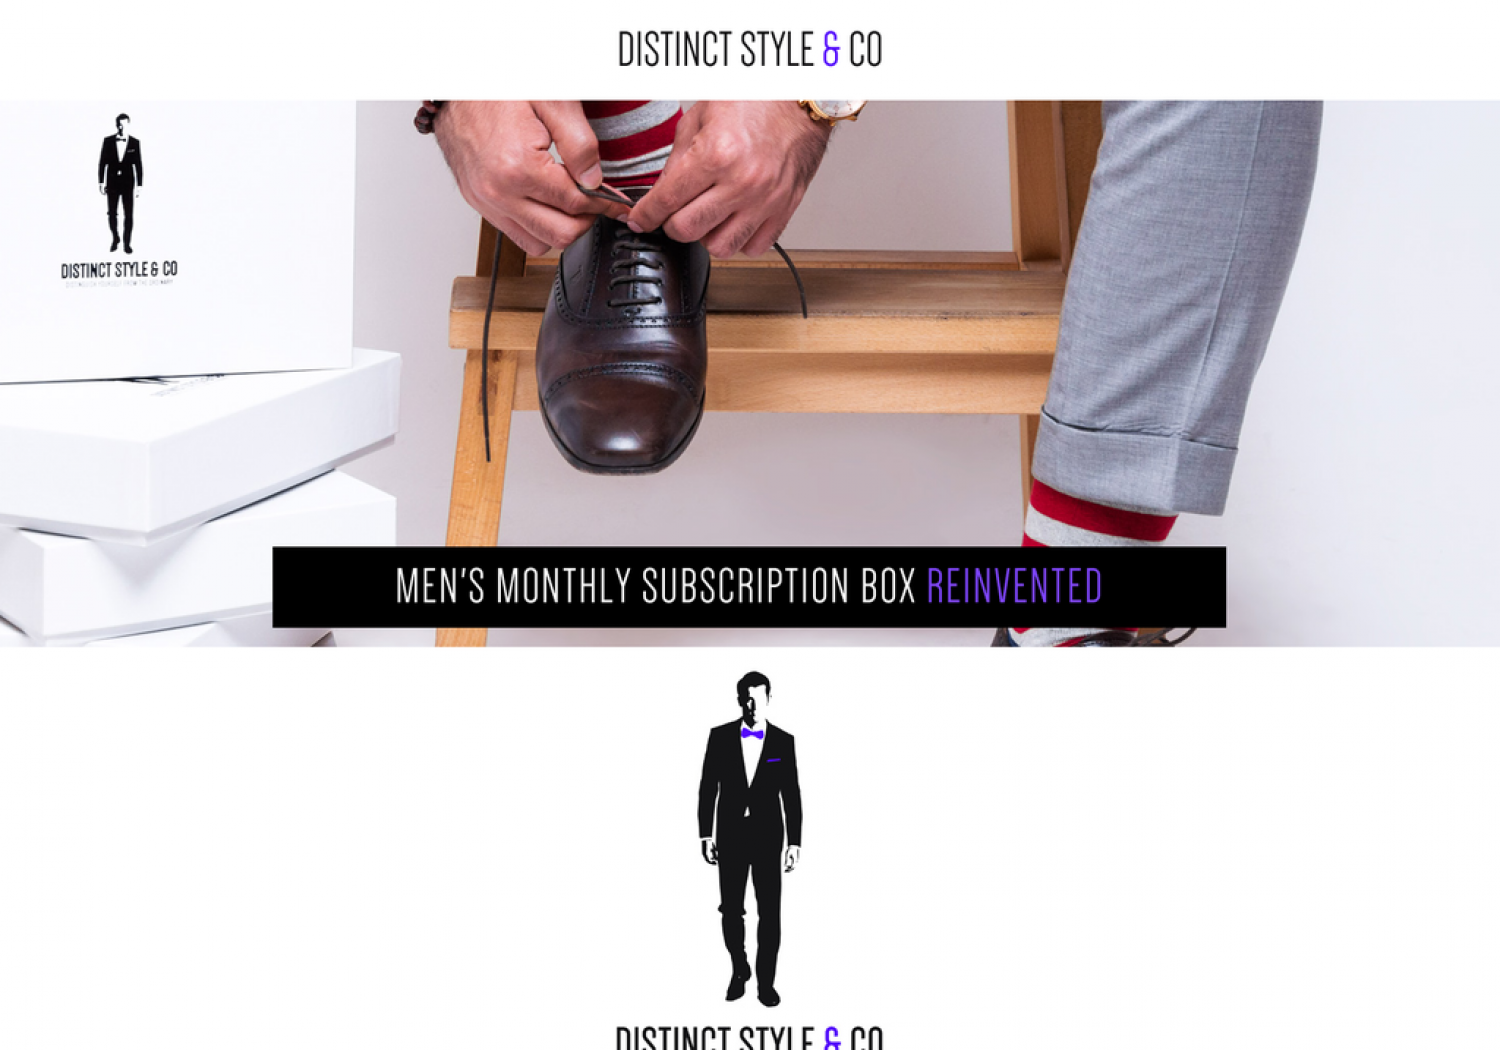 Distinct Style & Co Infographic